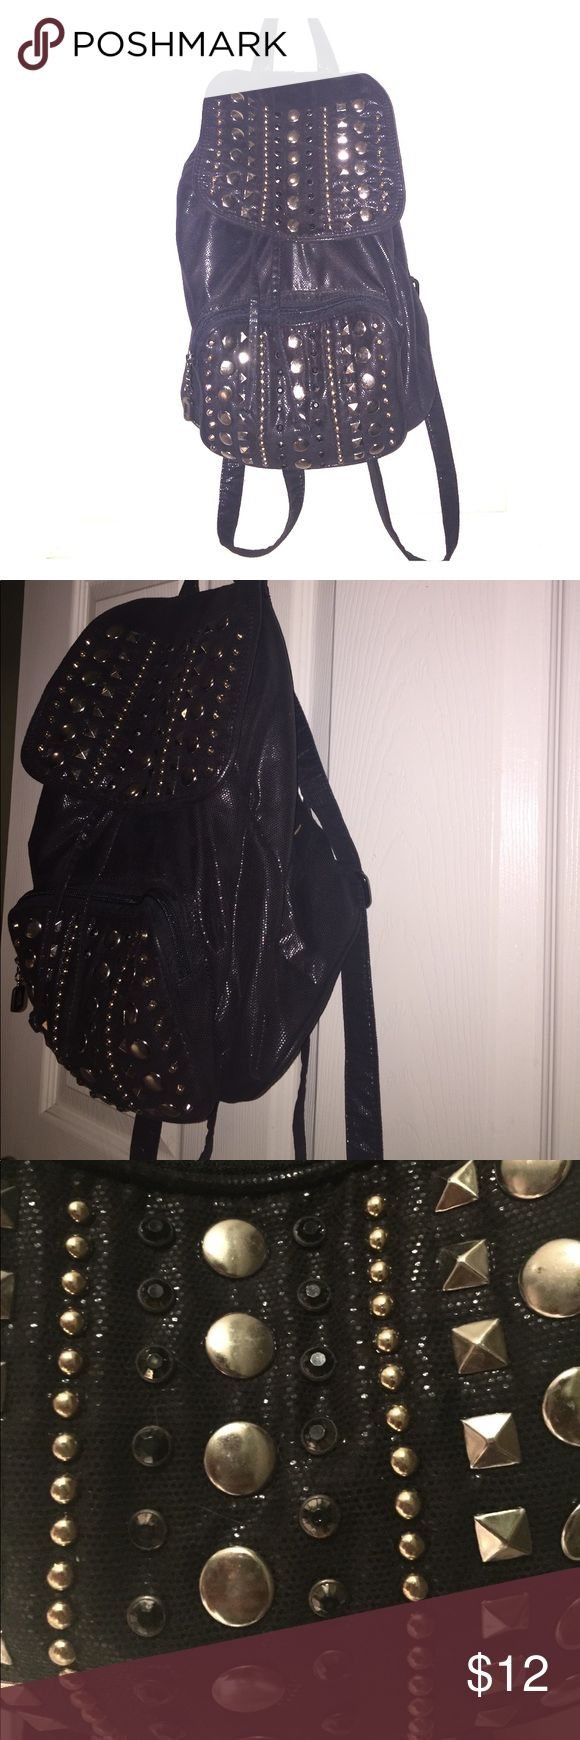 Black Studded Backpack Gently used black studded backpack. Metallic/black color. Studs have scuffs from use but bag has lots of life left. Small/Medium sized. Material: Cloth. Bags Backpacks